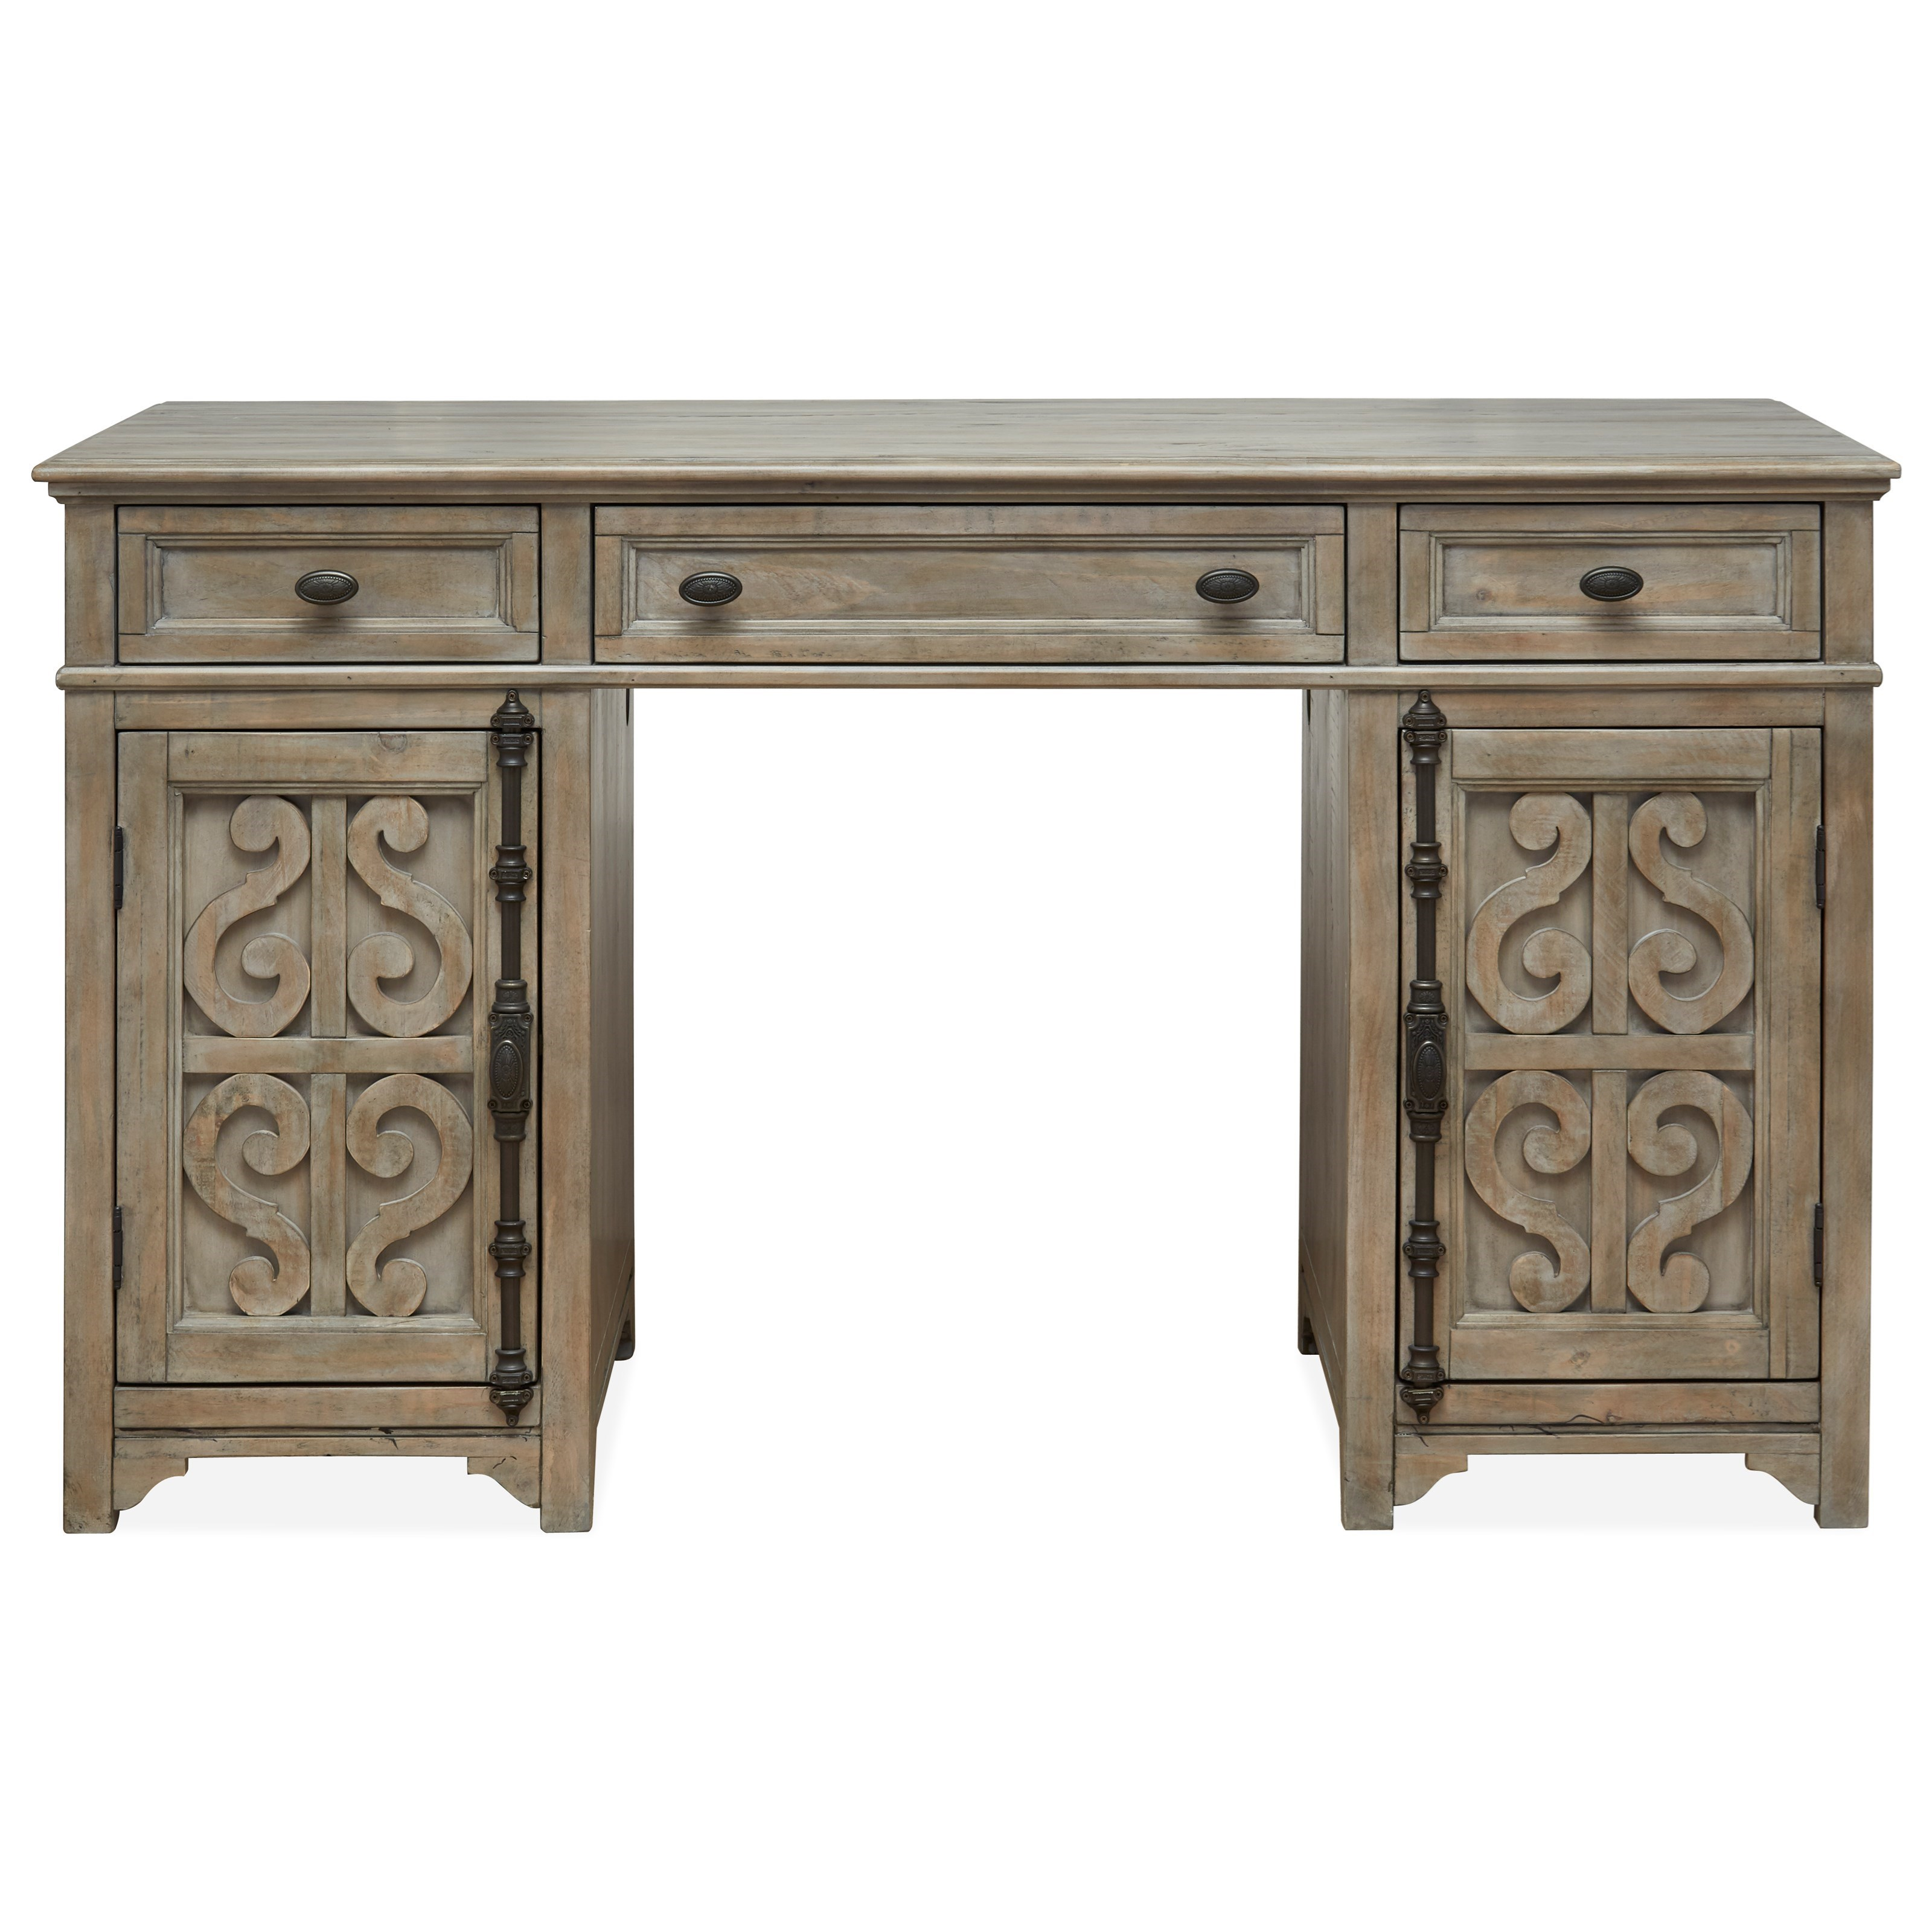 Relaxed Vintage Counter Height Standing Desk with Serpentine Carvings